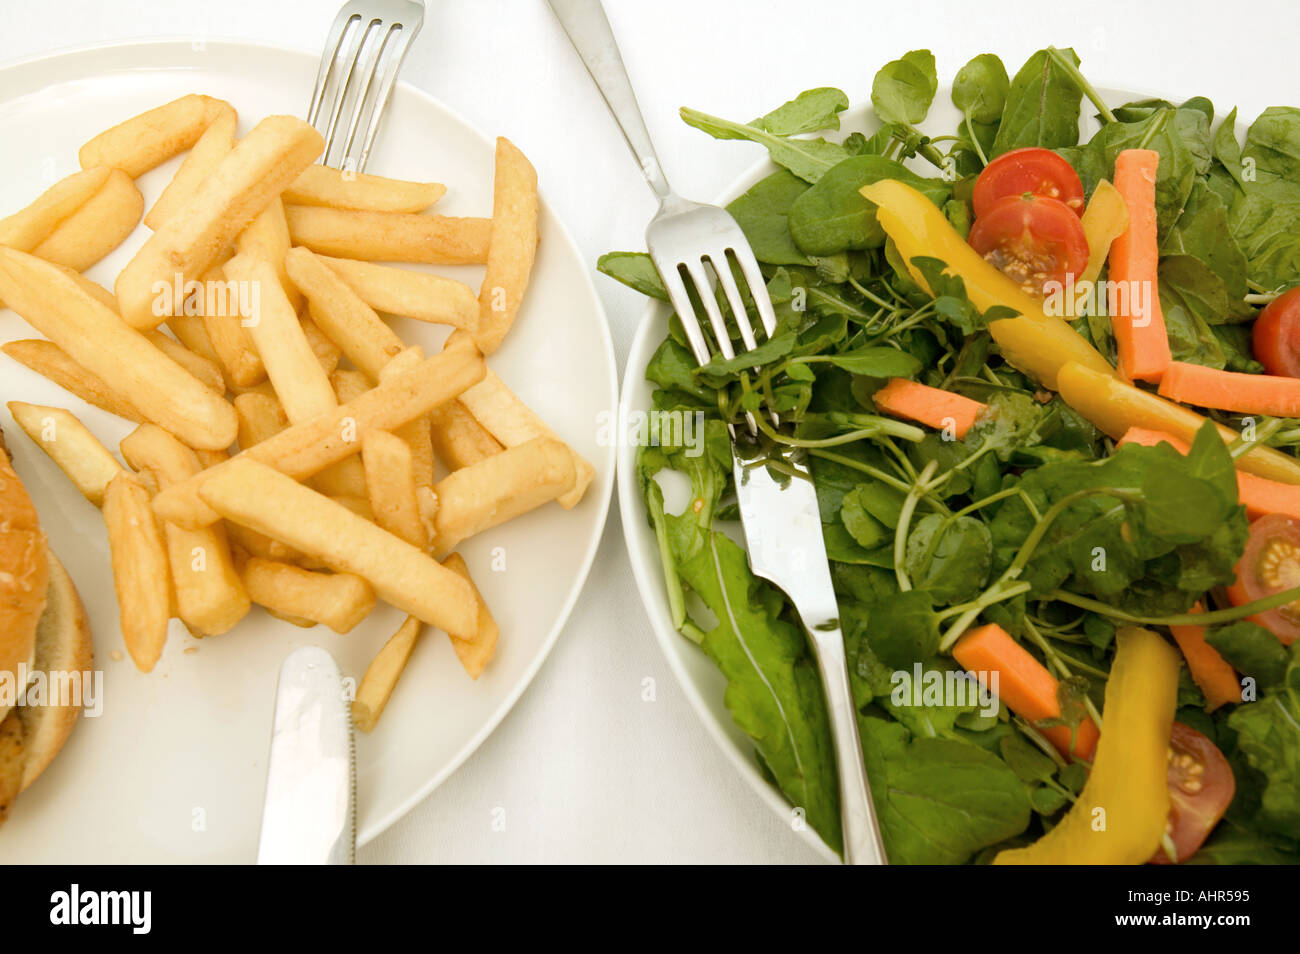 A healthy and unhealthy meal - Stock Image